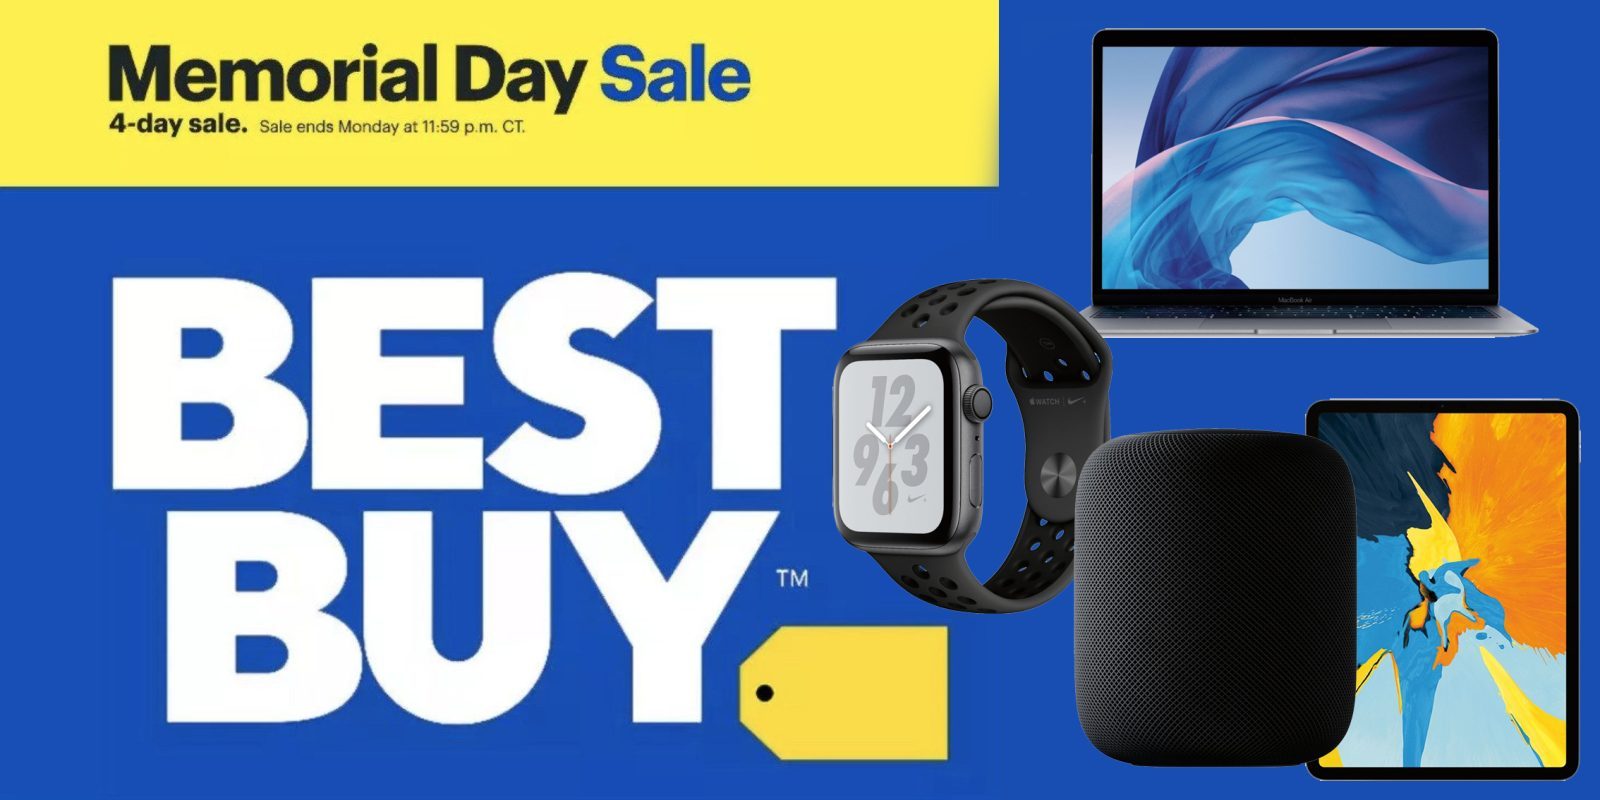 Best Buy Memorial Day Sale Has Deals On Nearly Every Apple Product